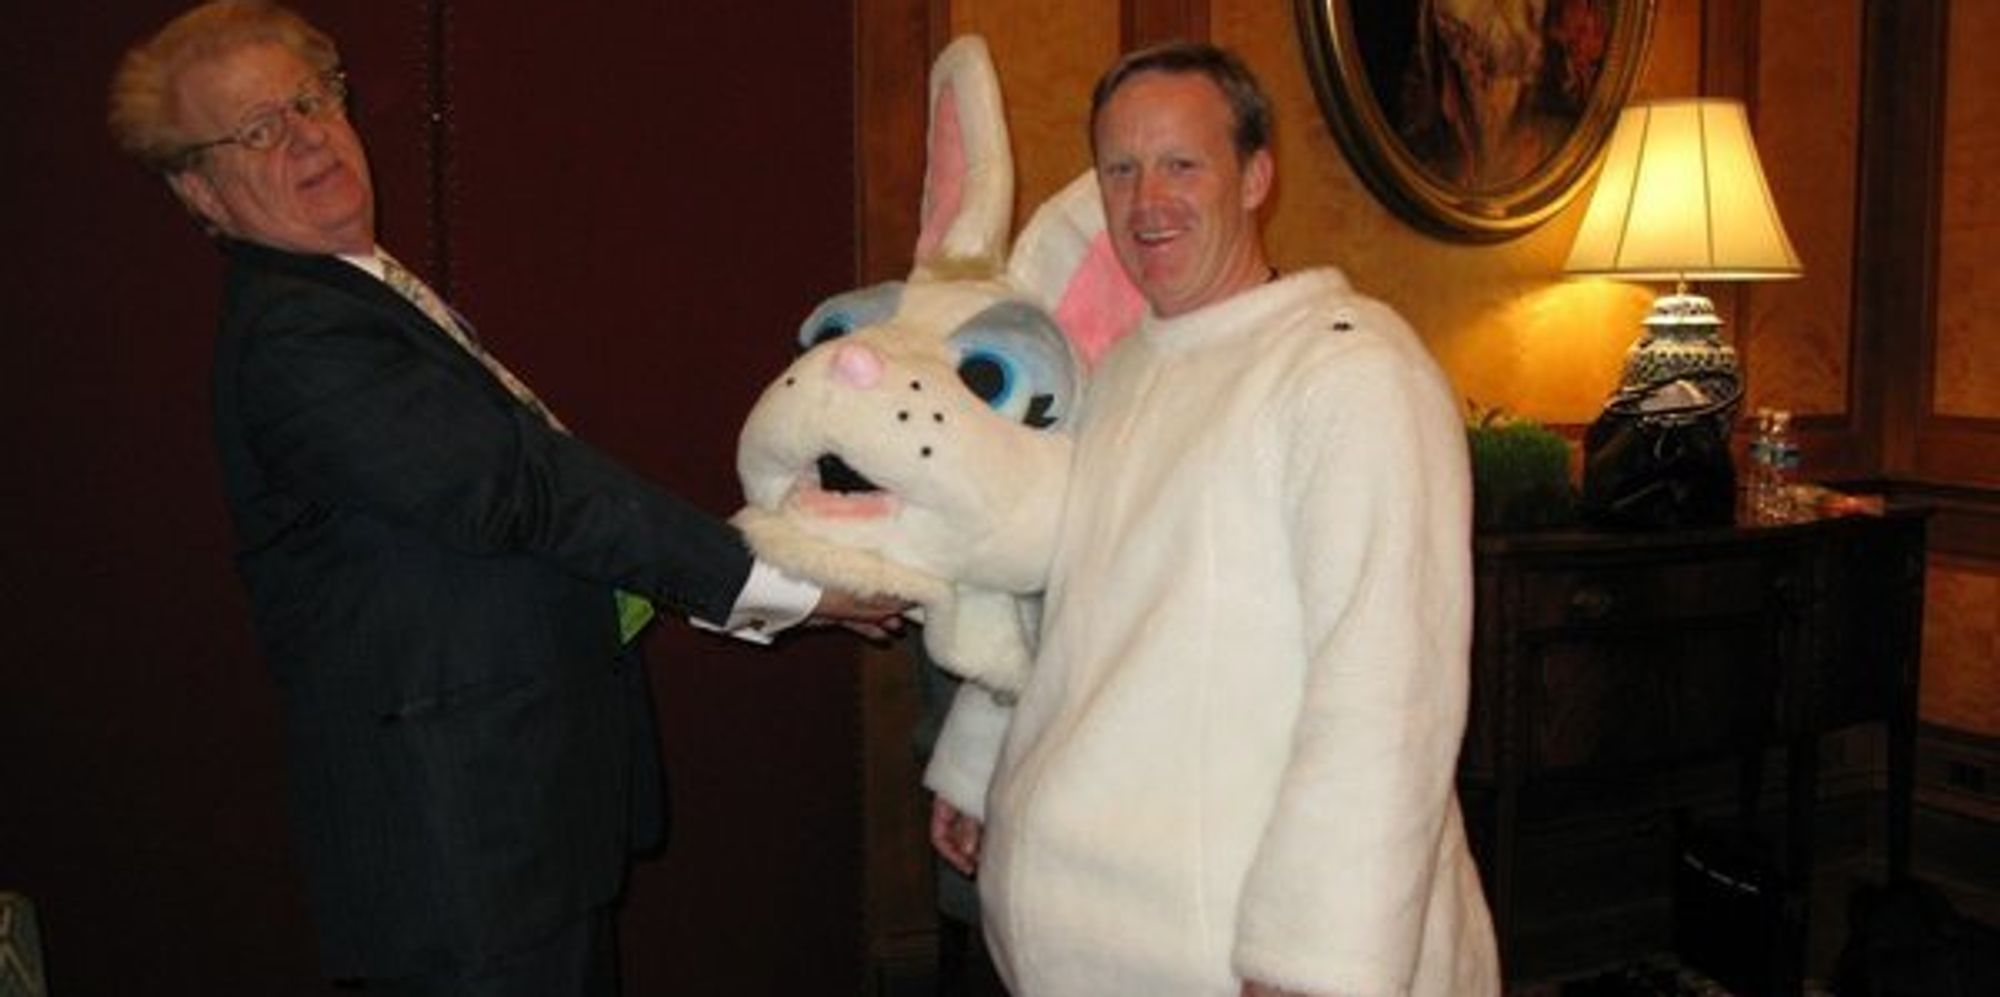 Finally, The Definitive Ranking Of People Dressed In Bunny Costumes